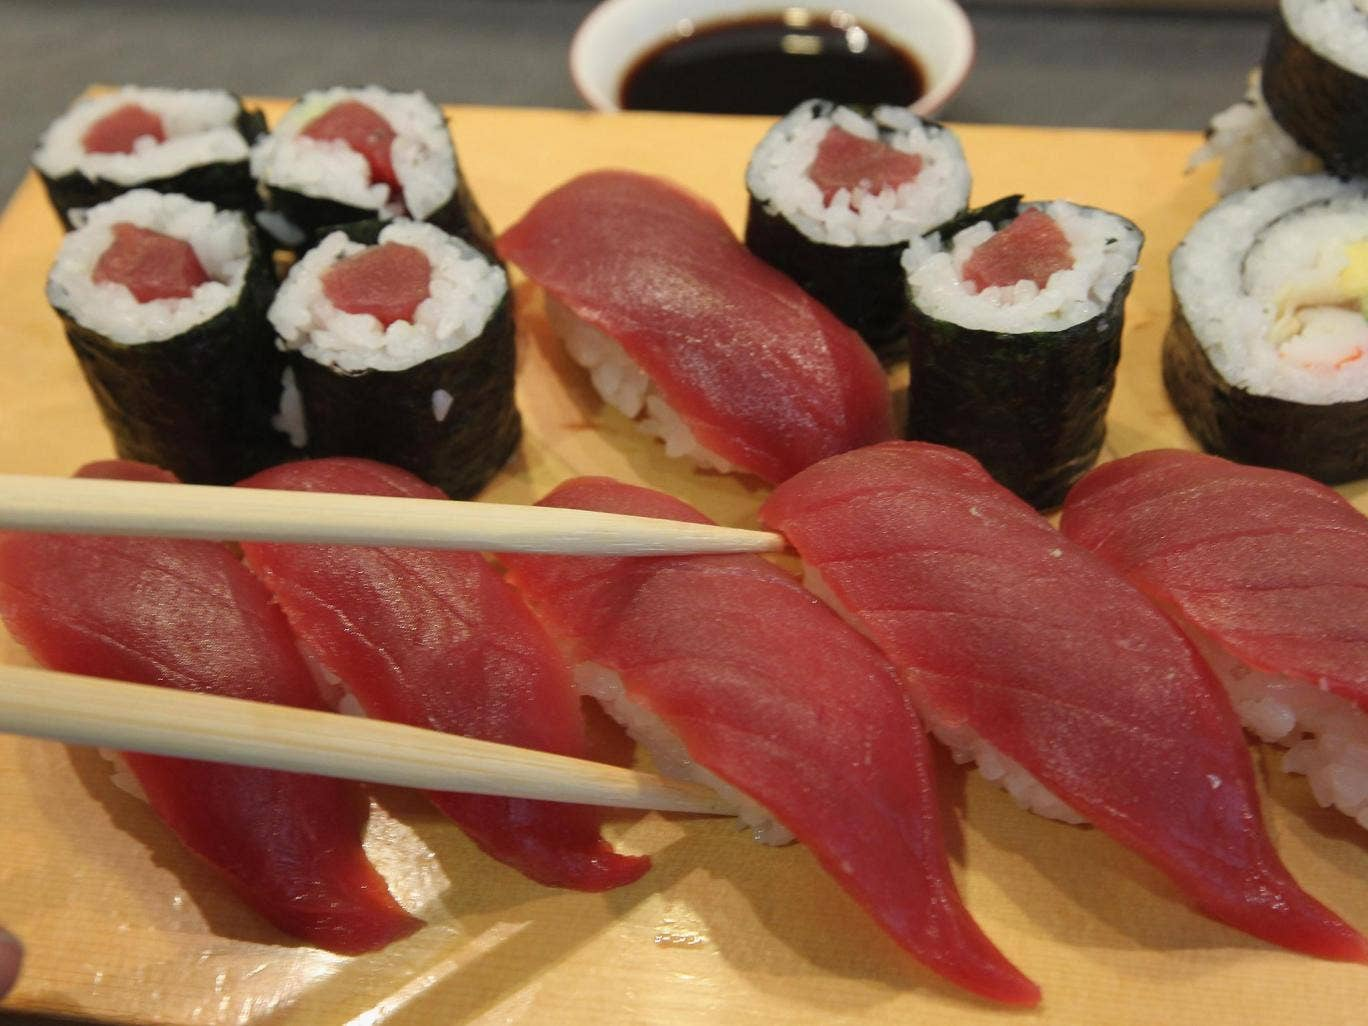 cultural diffusion sushi - the popularity of sushi, a traditional japanese dish, shows diffusion of japanese cuisine- the french quarter in new orleans show diffusion of french culture - people in the united states celebrate cinco de mayo - over two million persecuted jews fled eastern europe between 1881 and 1914 to live in britain or the united states.